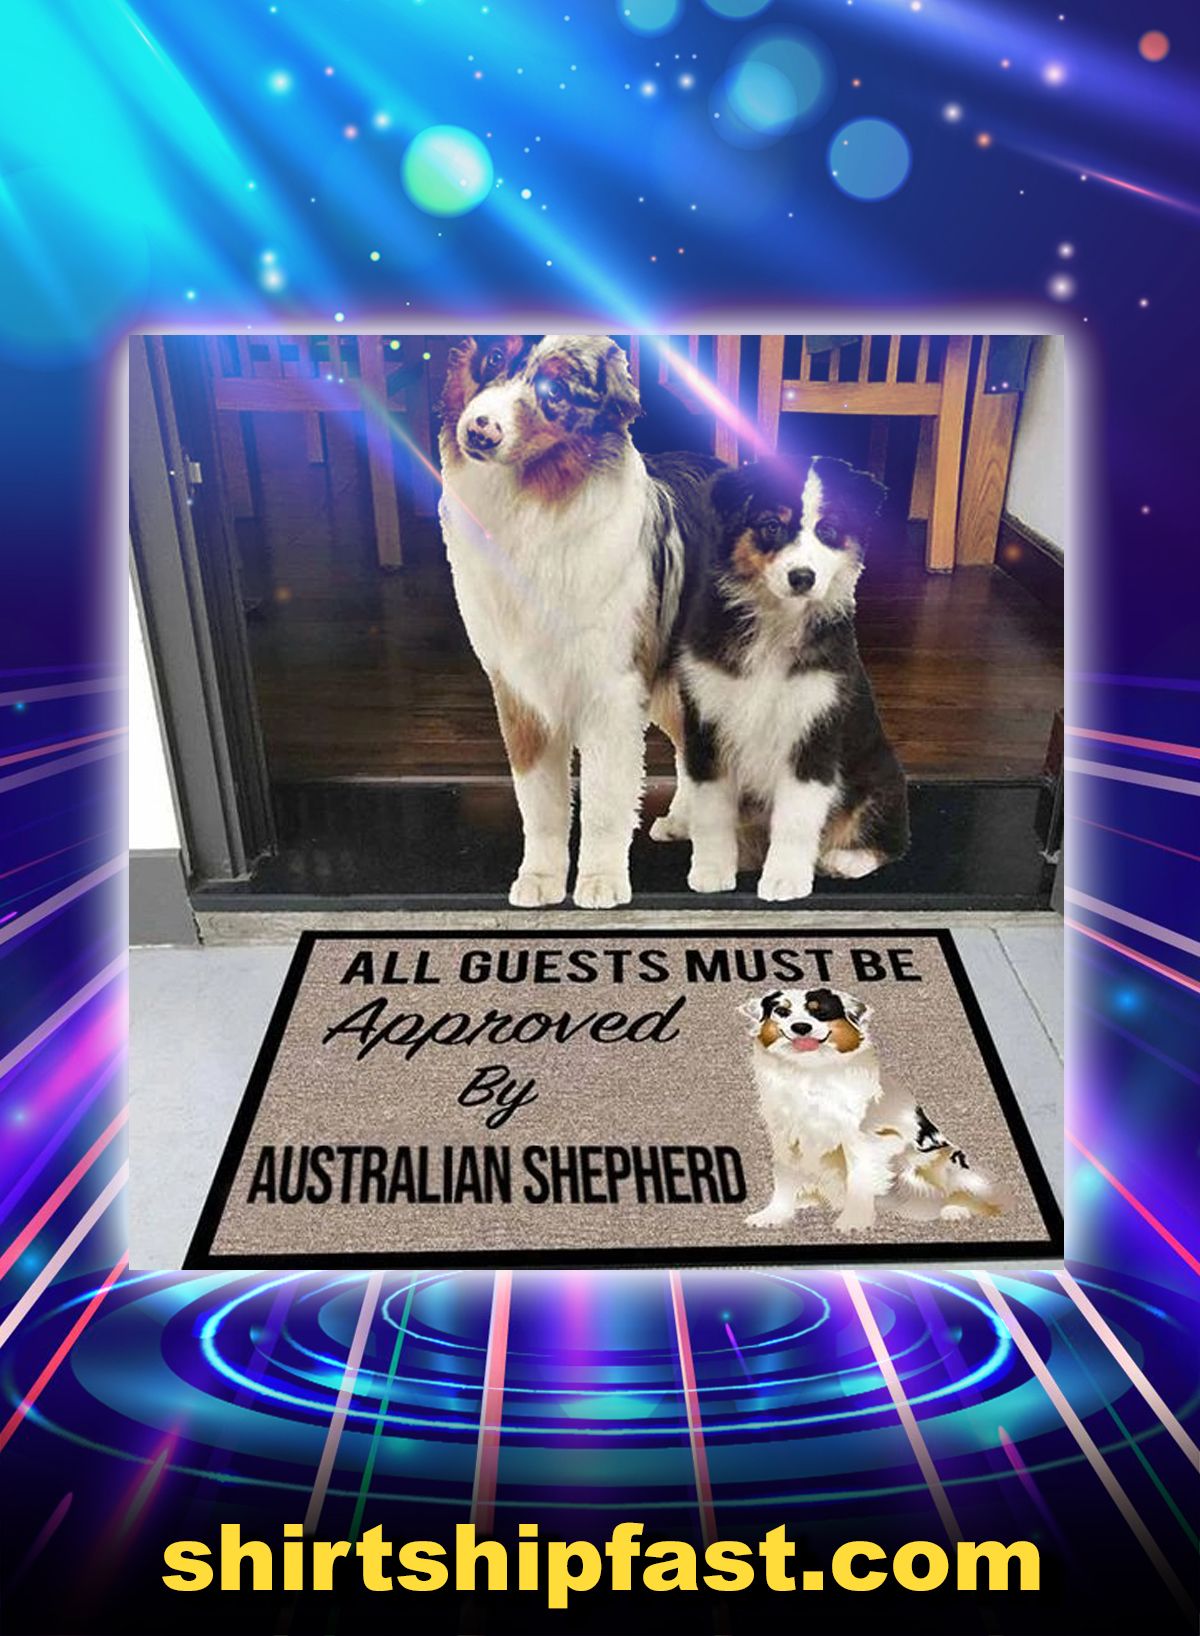 All guests must be approved by australian shepherd doormat - Picture 1